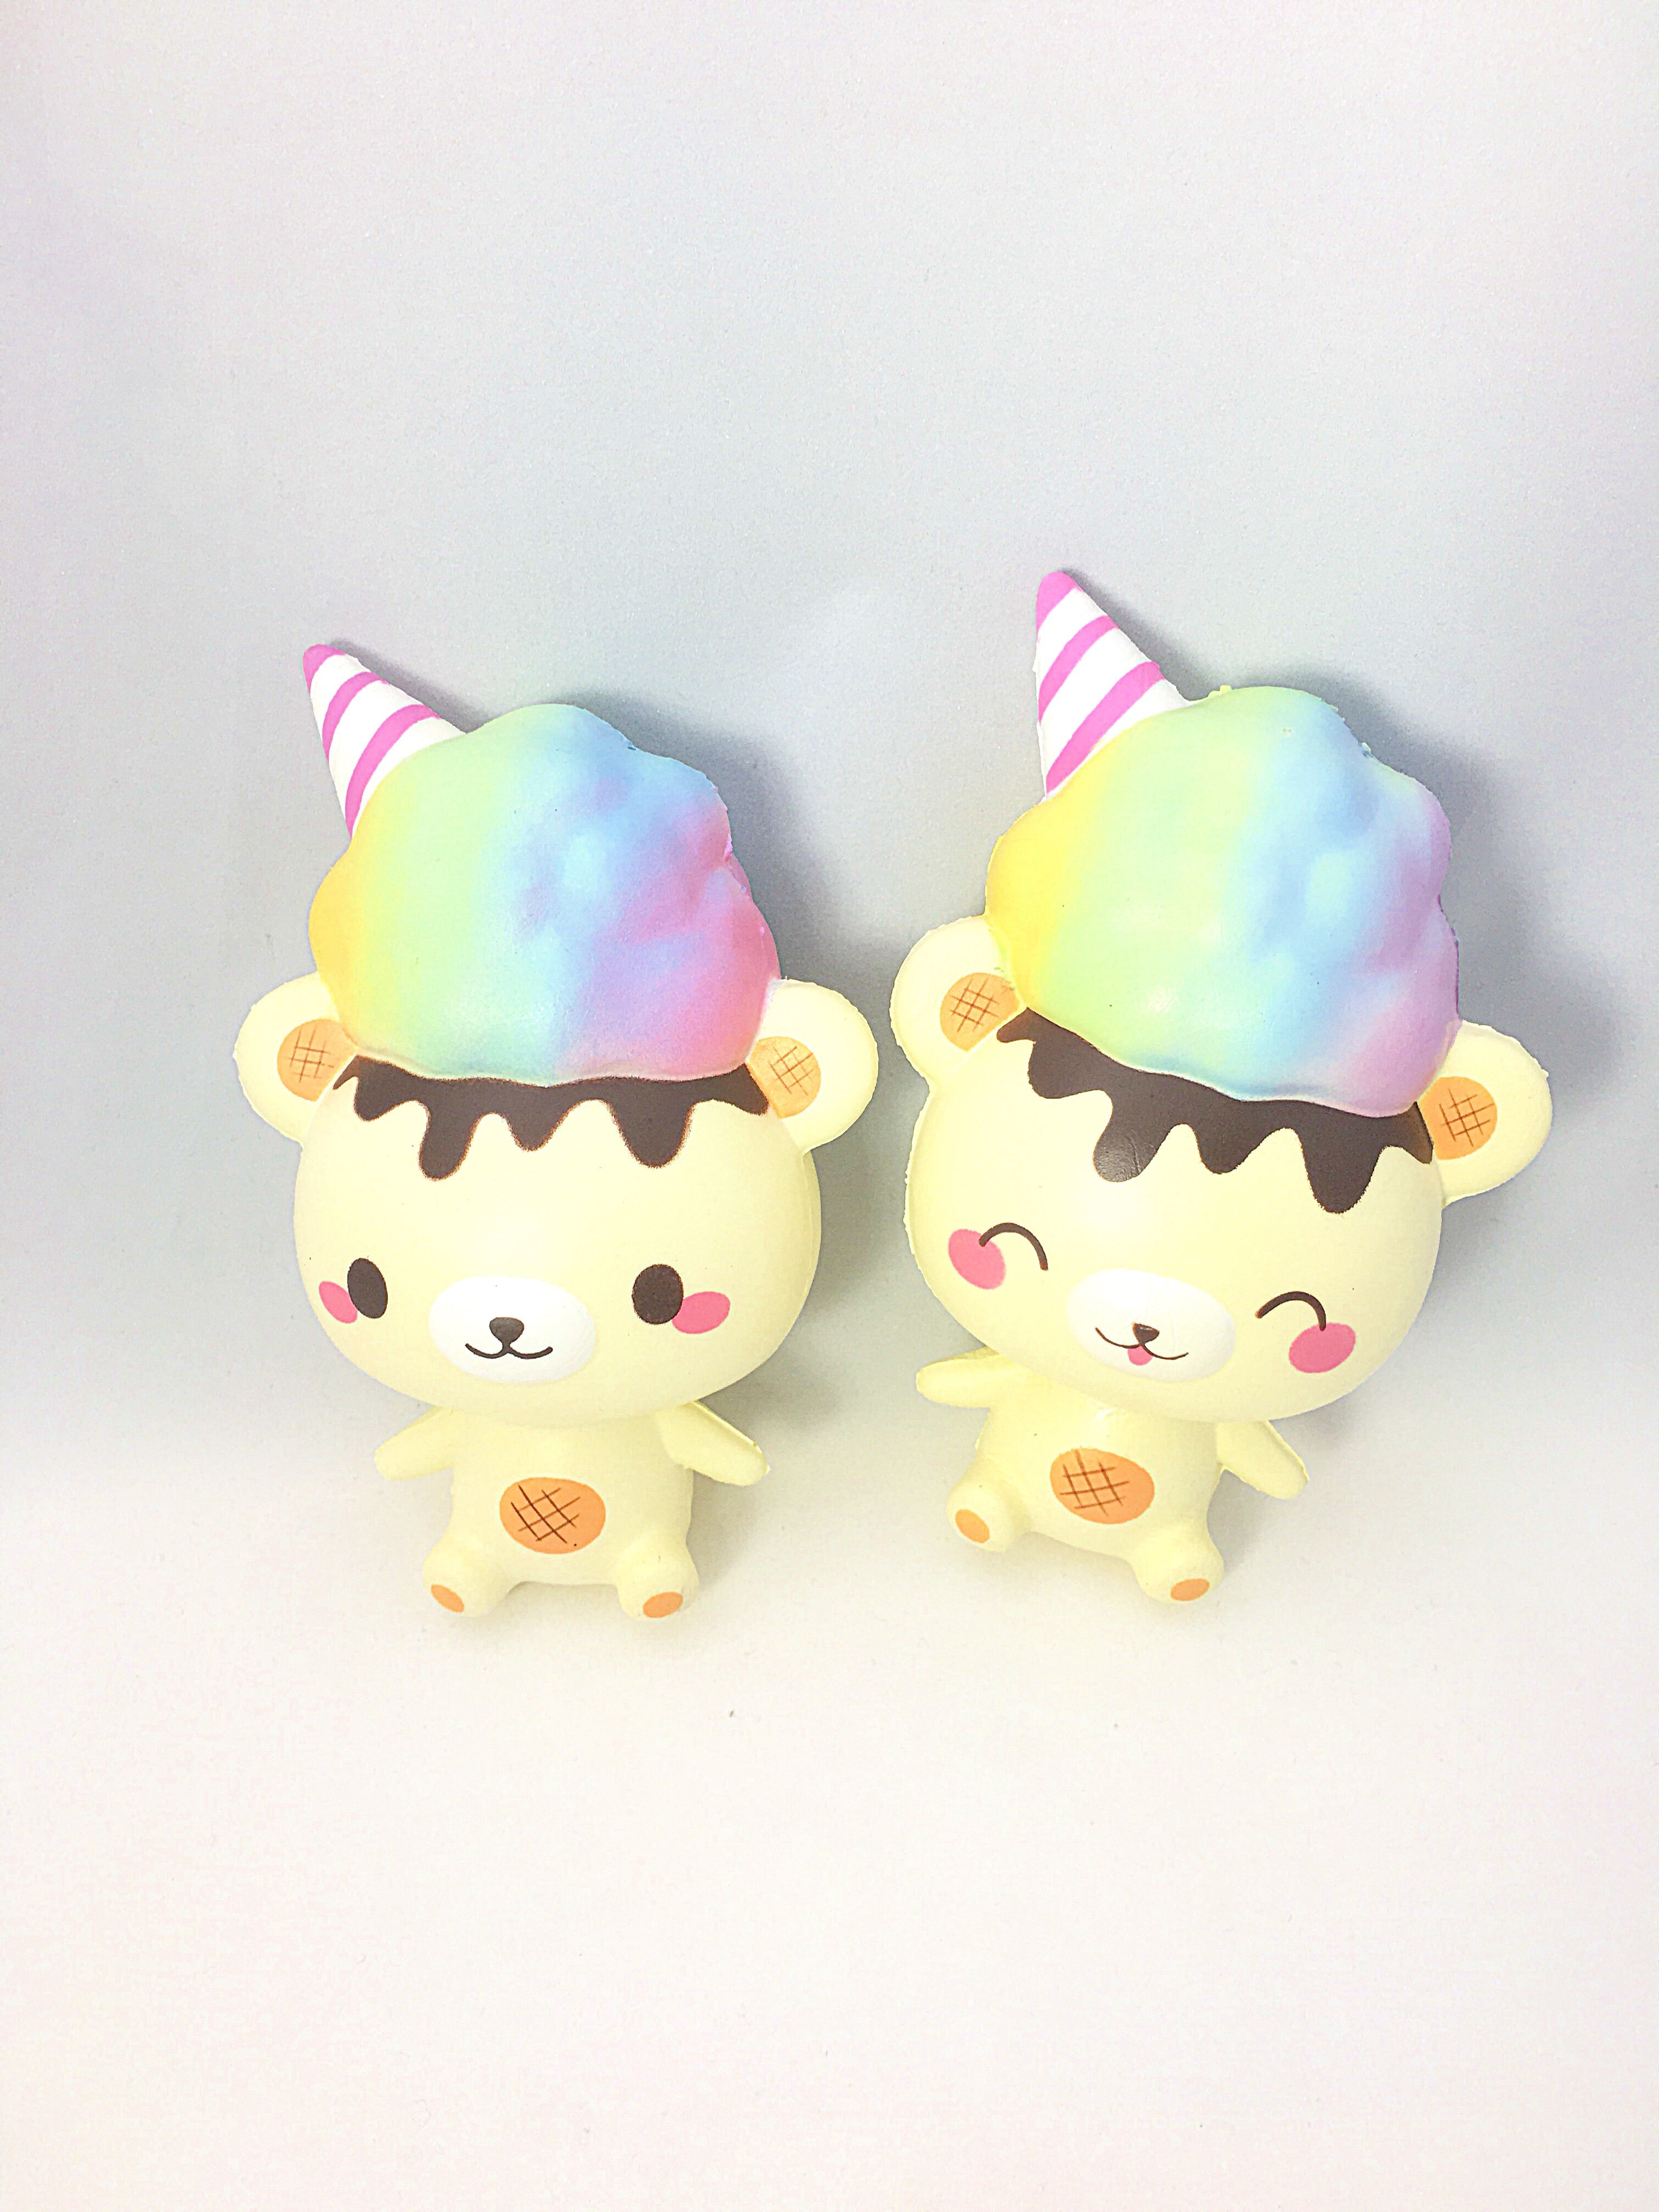 Licensed Fairy Floss Yummiibear Squishies